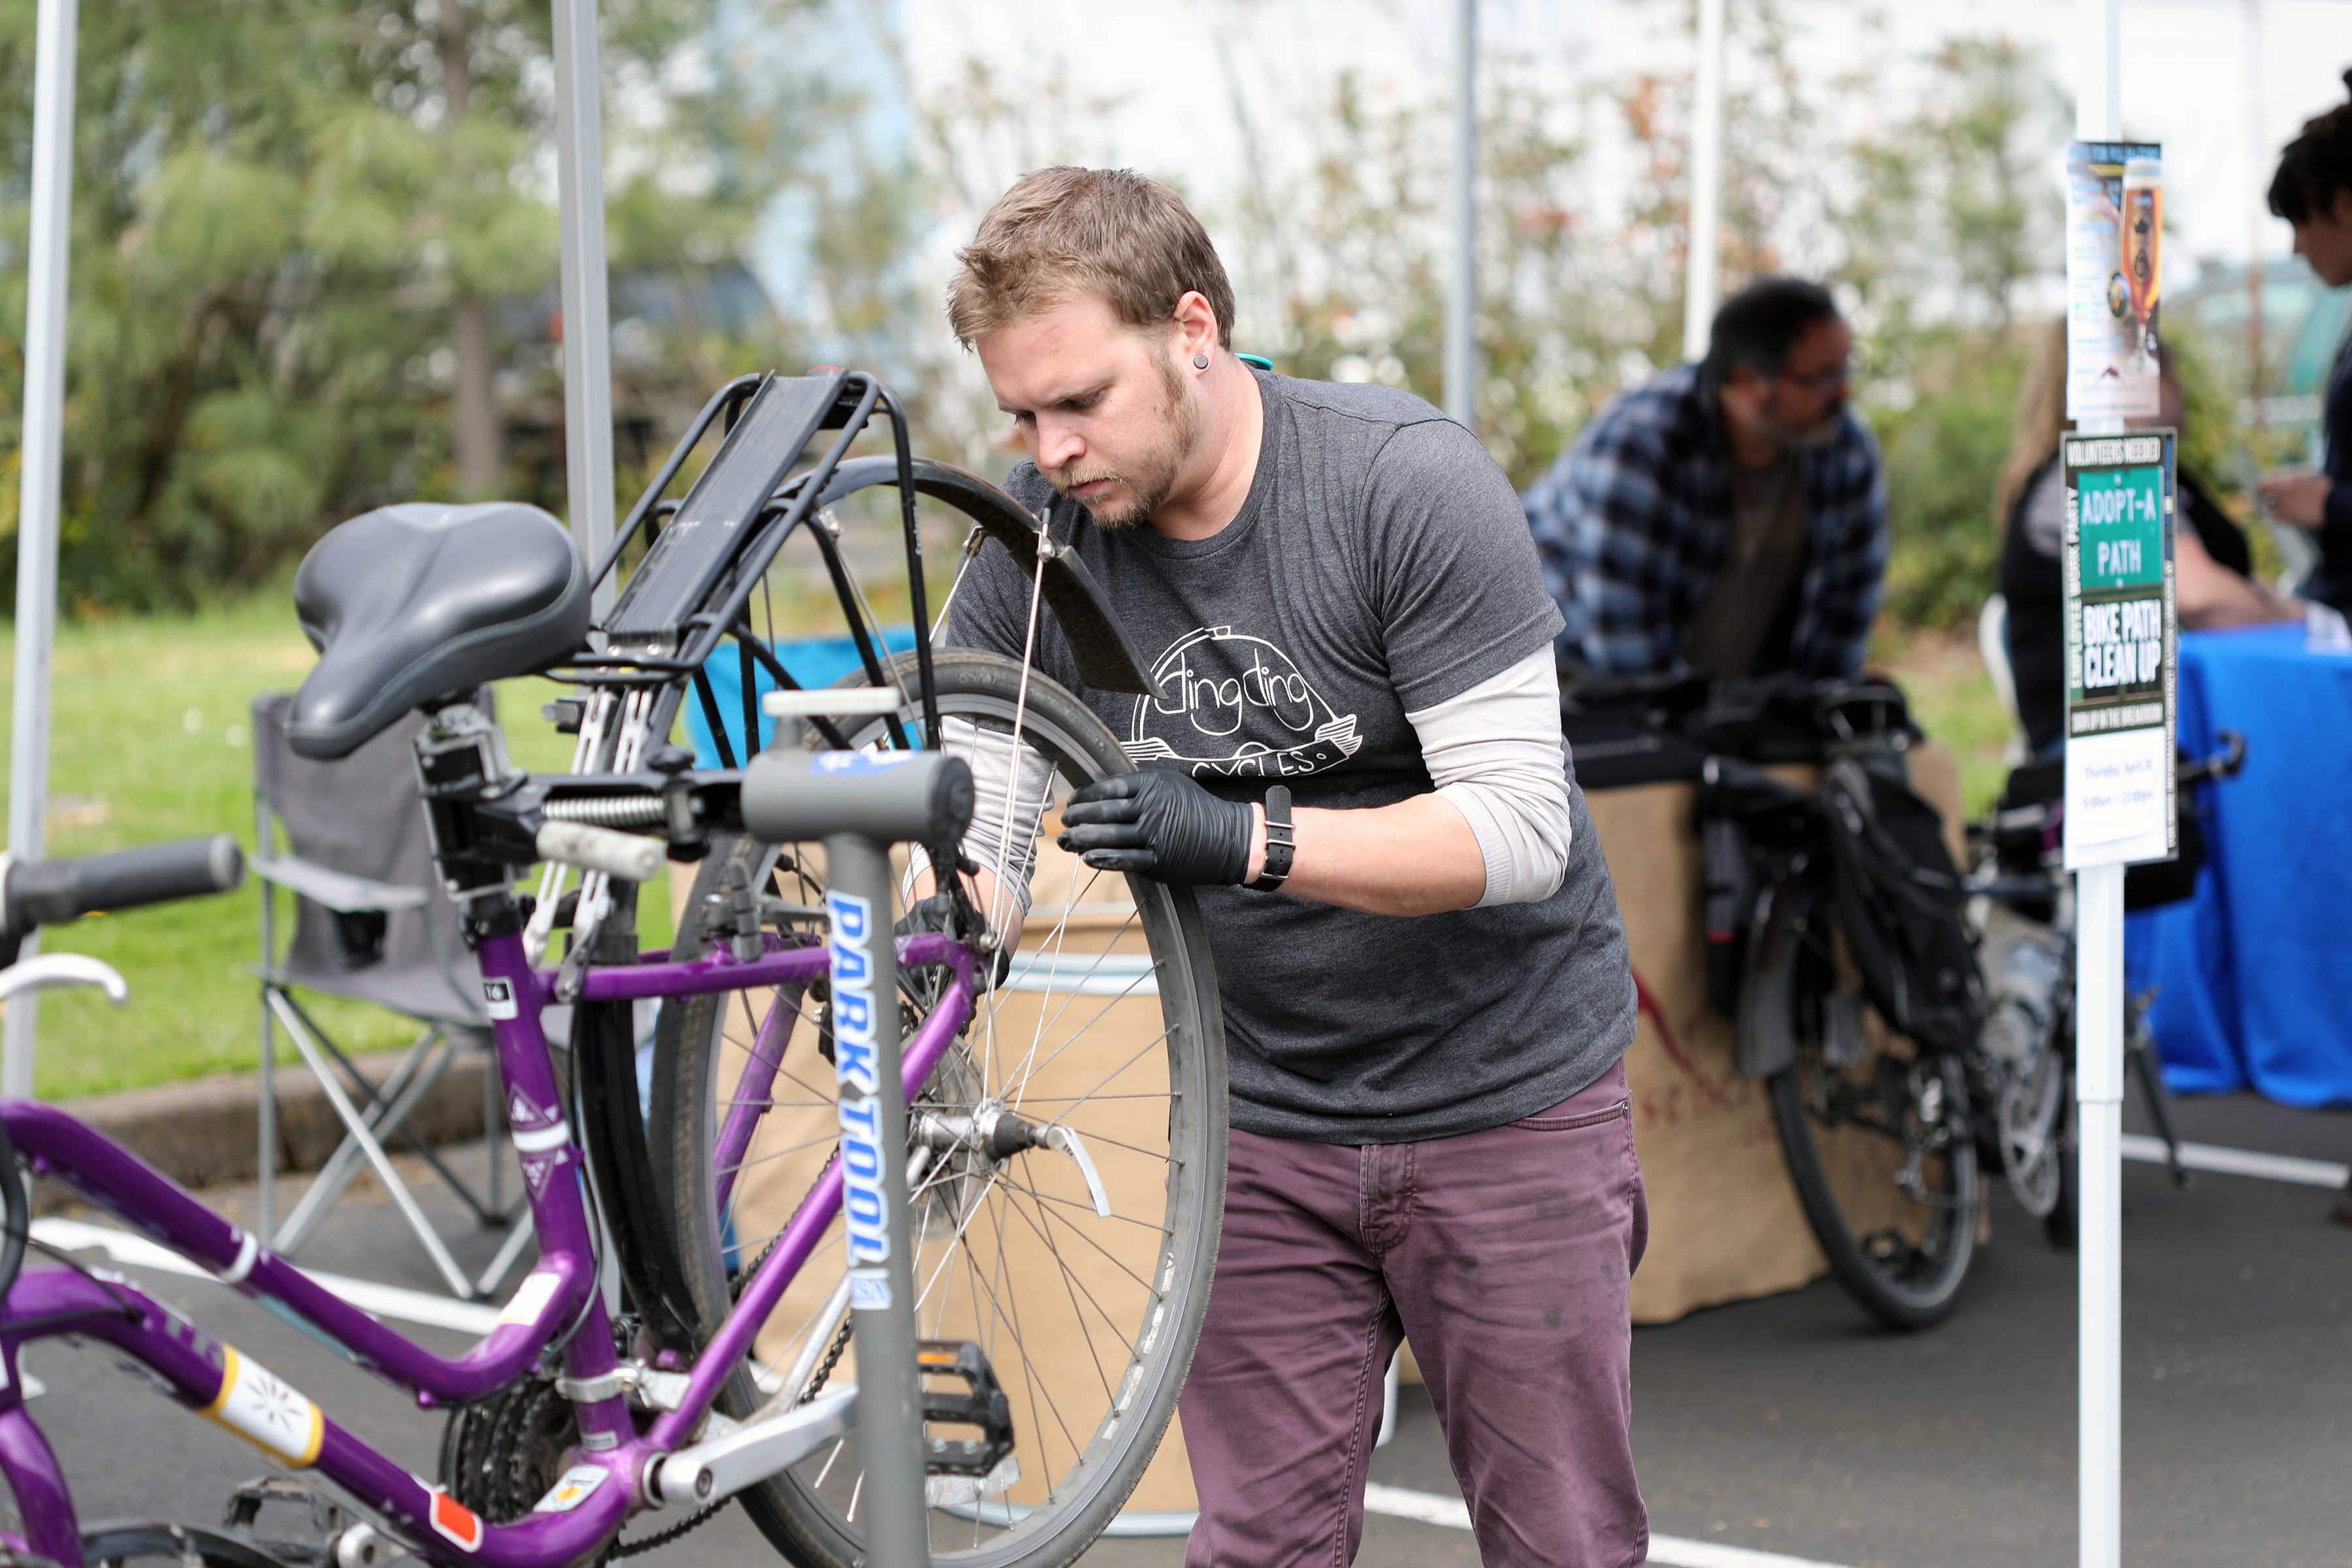 Person holding back tire of bike making adjustments for bike tune up